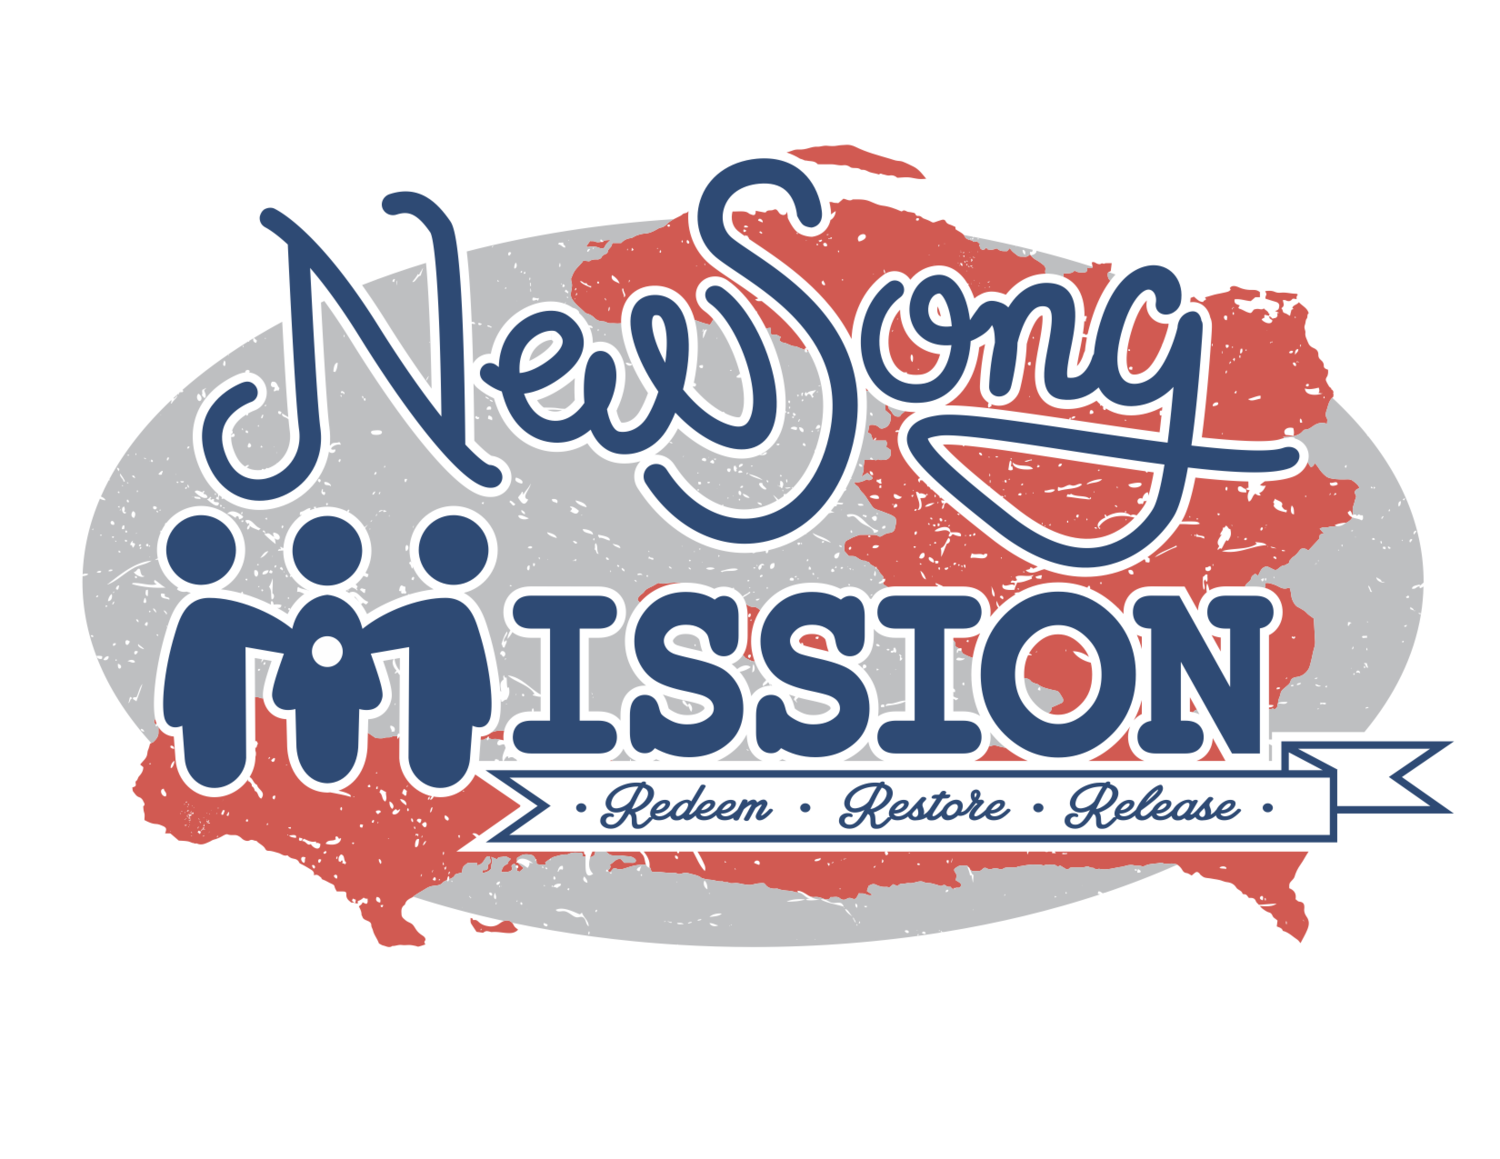 New Song Mission